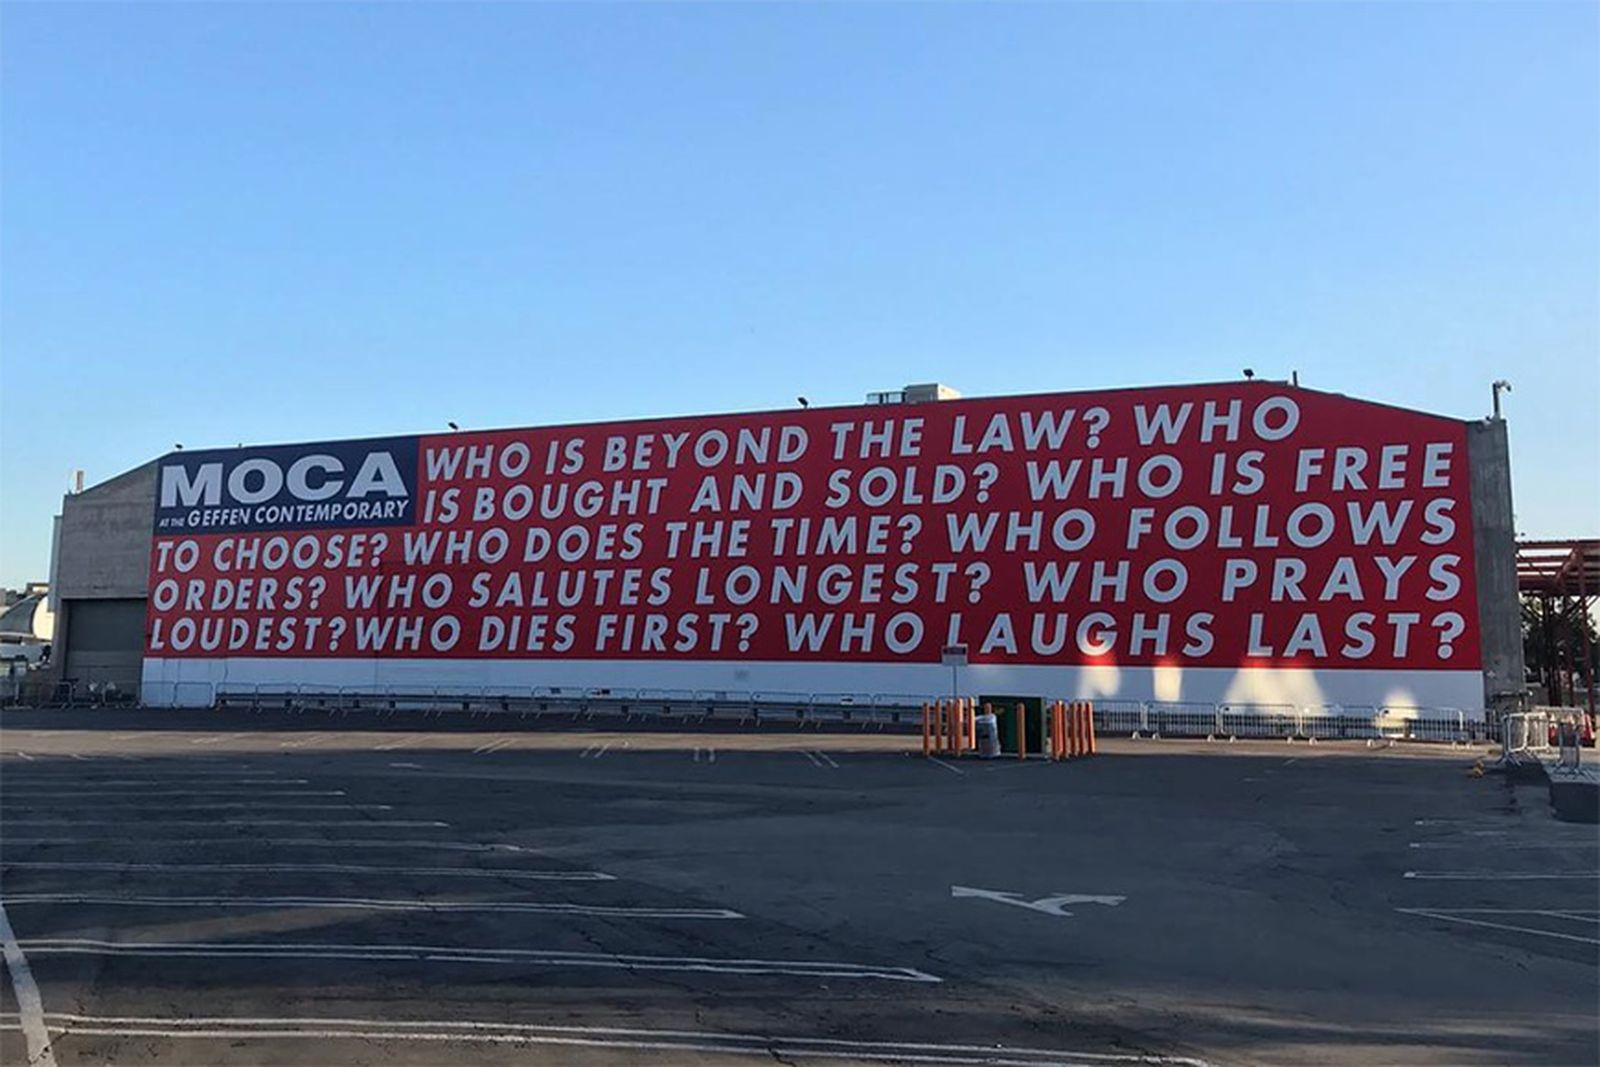 barbara kruger untitled questions moca mural